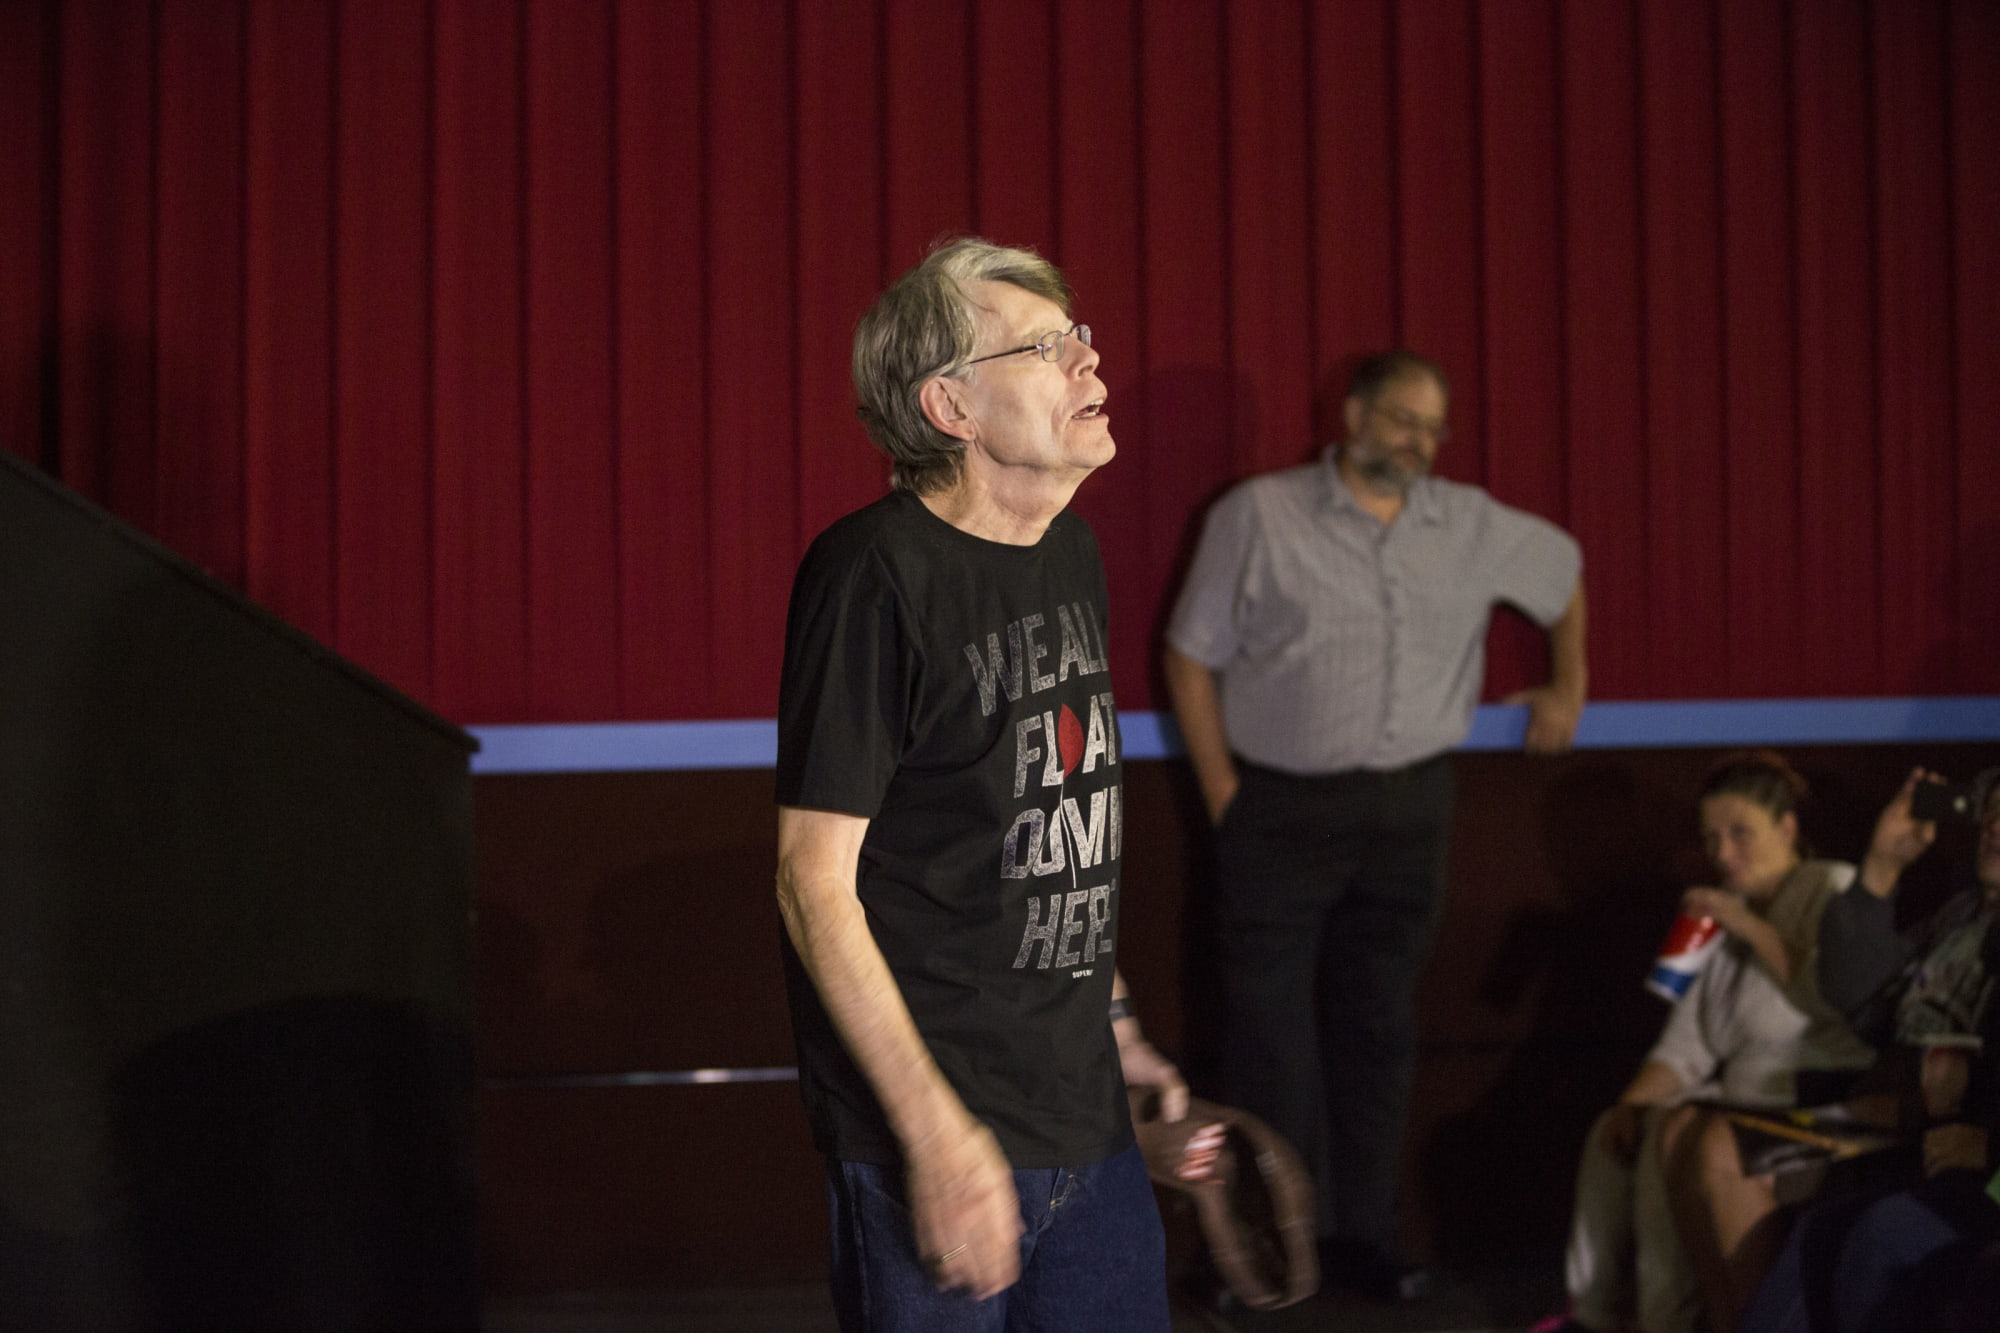 Stephen King: Could his new book Later be the next IT?